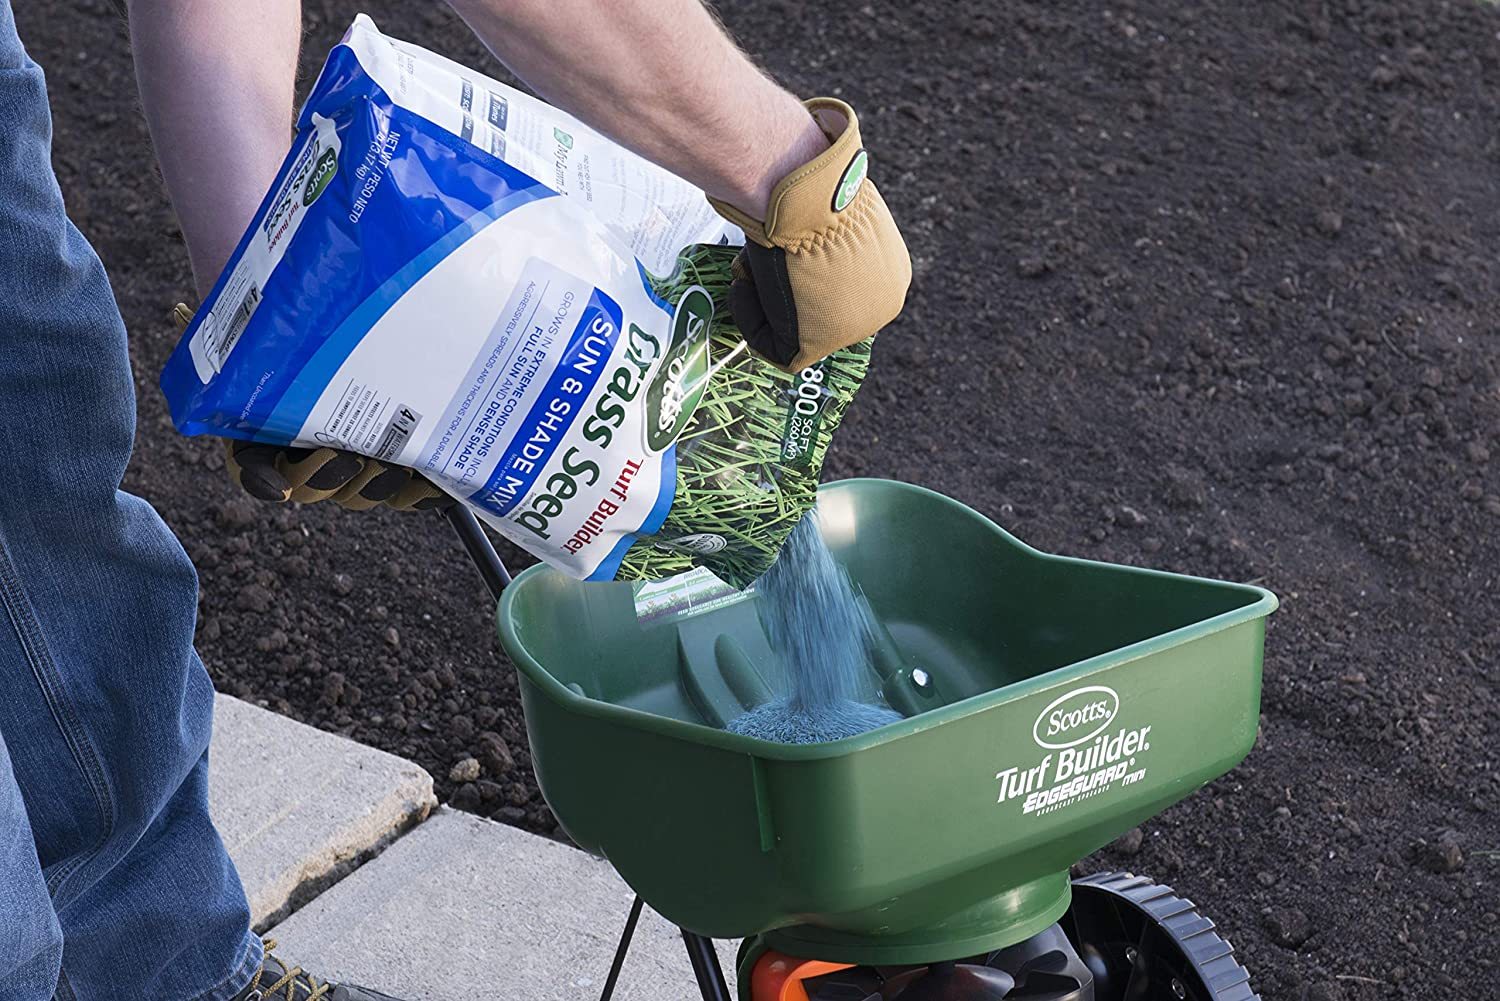 3 lbs Scotts Turf Builder Grass Seed Sun /& Shade Mix Spreads /& Thickens For A Durable Lawn Grows In Extreme Conditions Including Full Sun /& Dense Shade